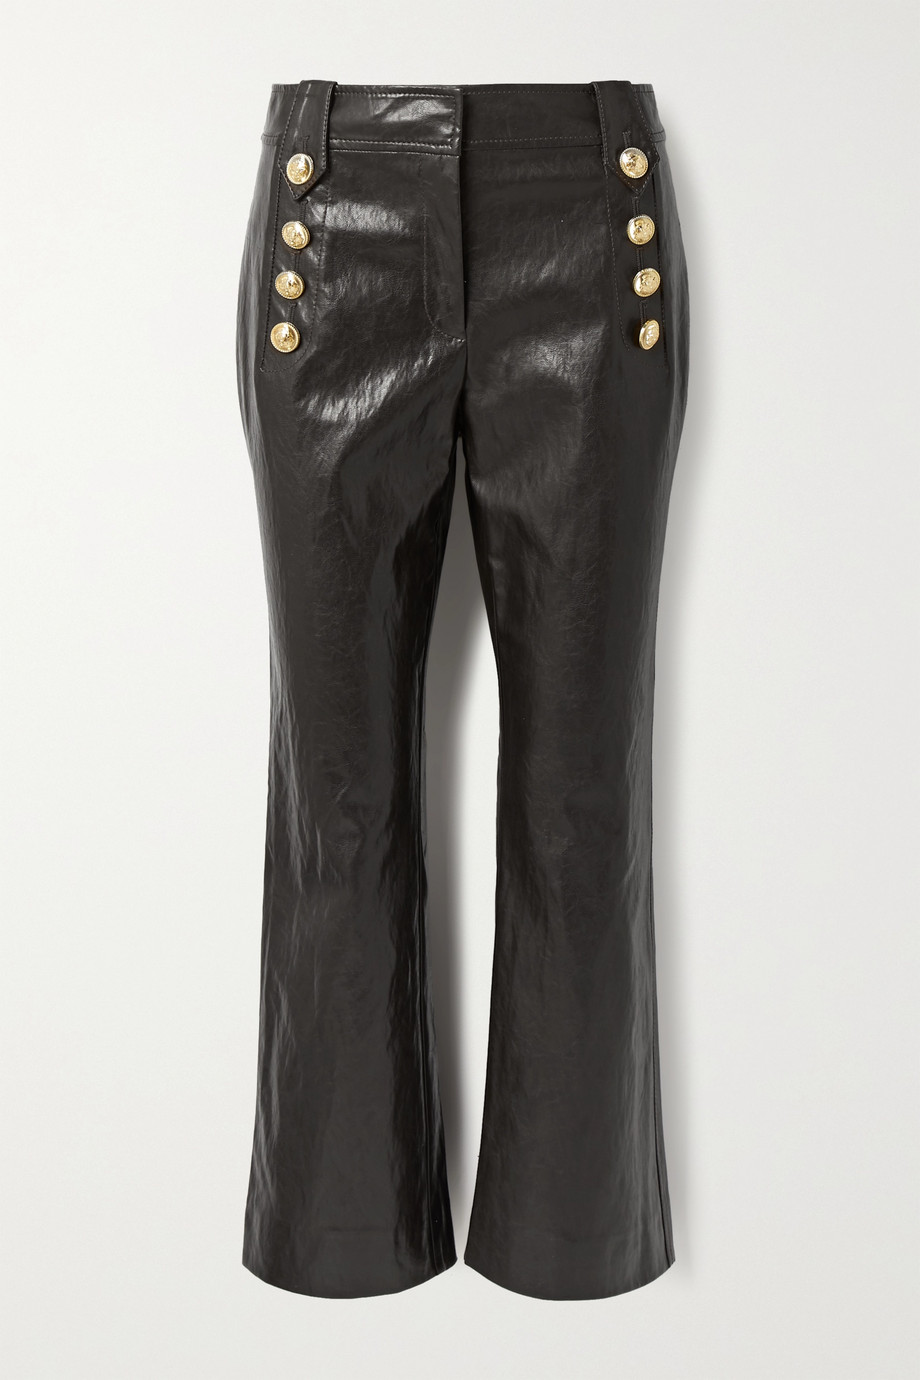 Derek Lam 10 Crosby Corinna button-embellished cropped faux leather flared pants